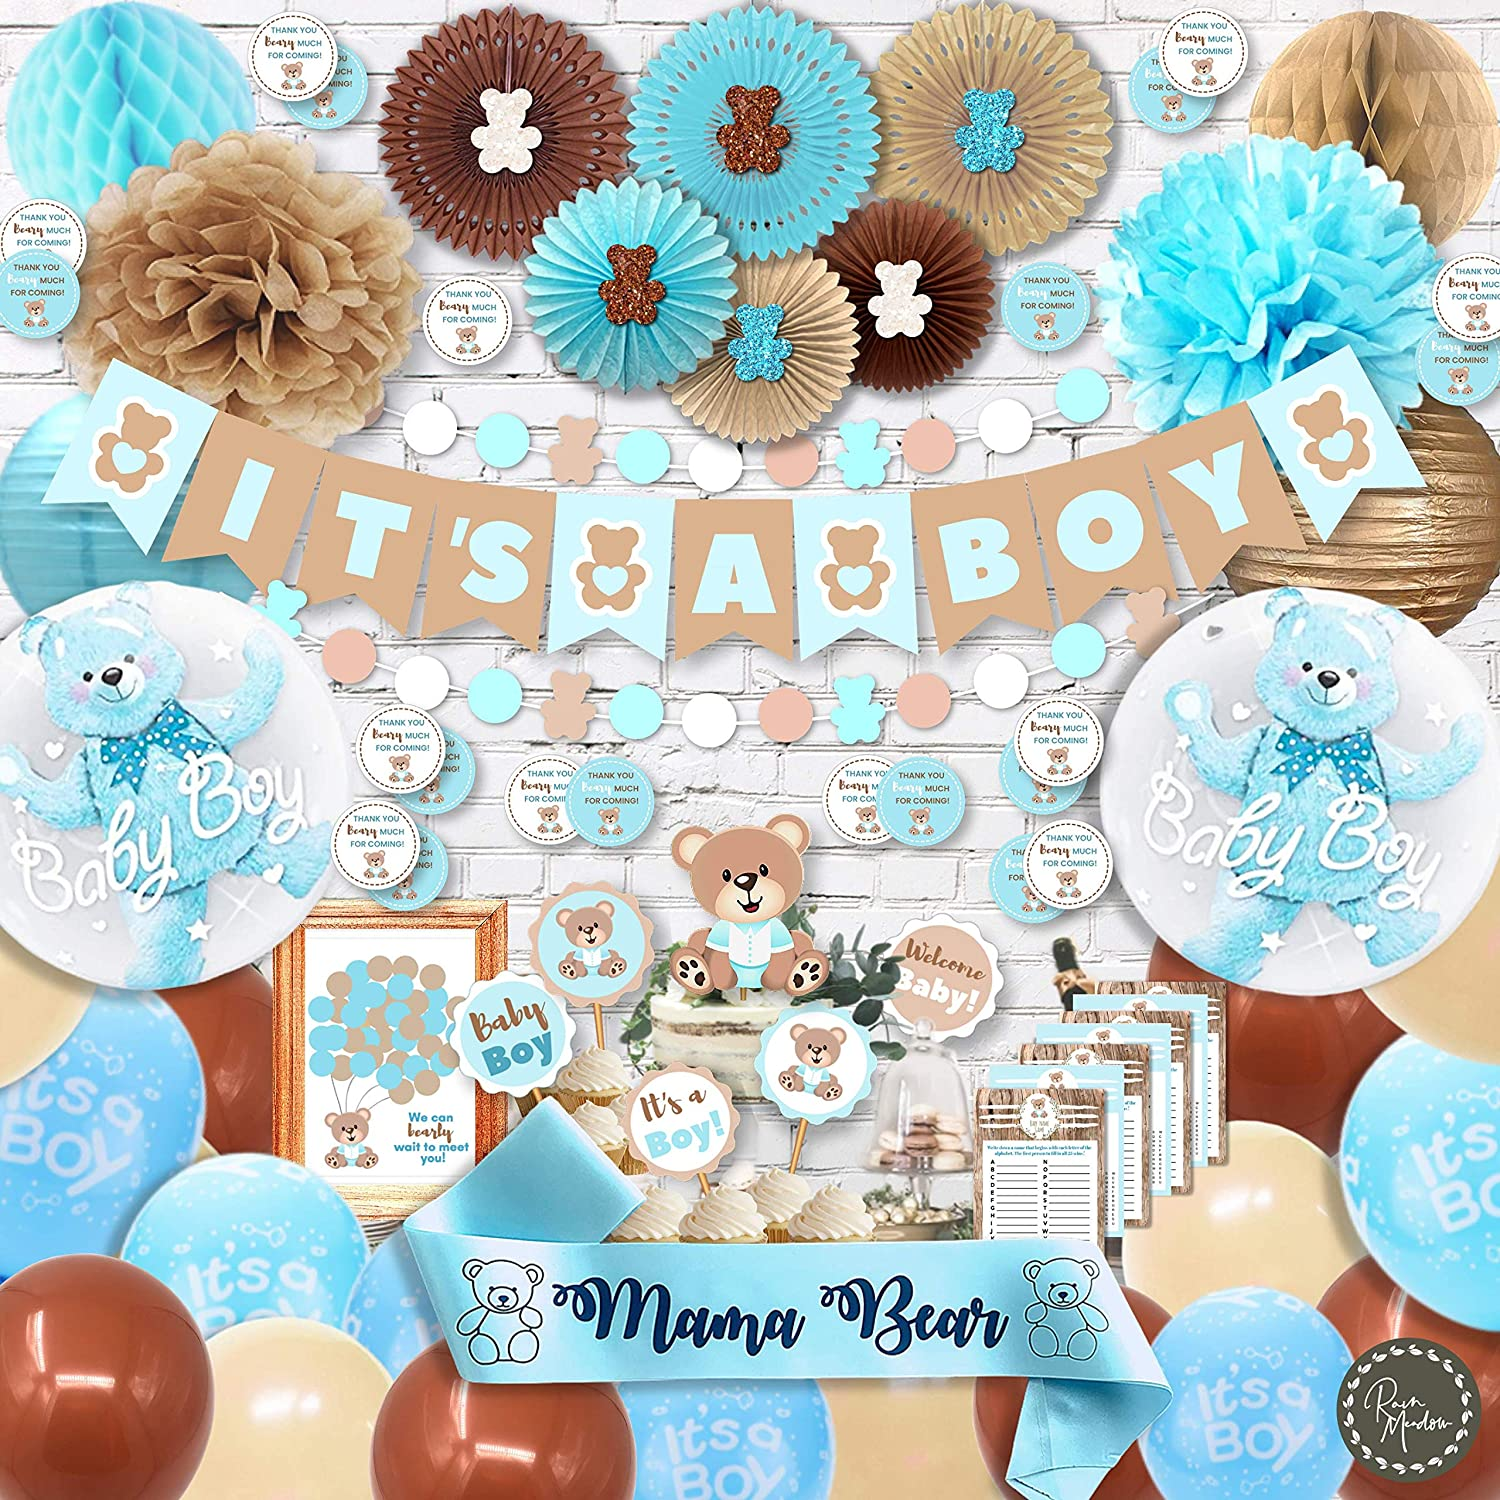 RainMeadow Teddy Bear Baby Shower Decorations for Boy It's A Boy Banner, Sash, Guestbook, Favour Stickers, Game Cards, Paper Lanterns, Honeycombs, Pom-poms, Cake Toppers, Balloons